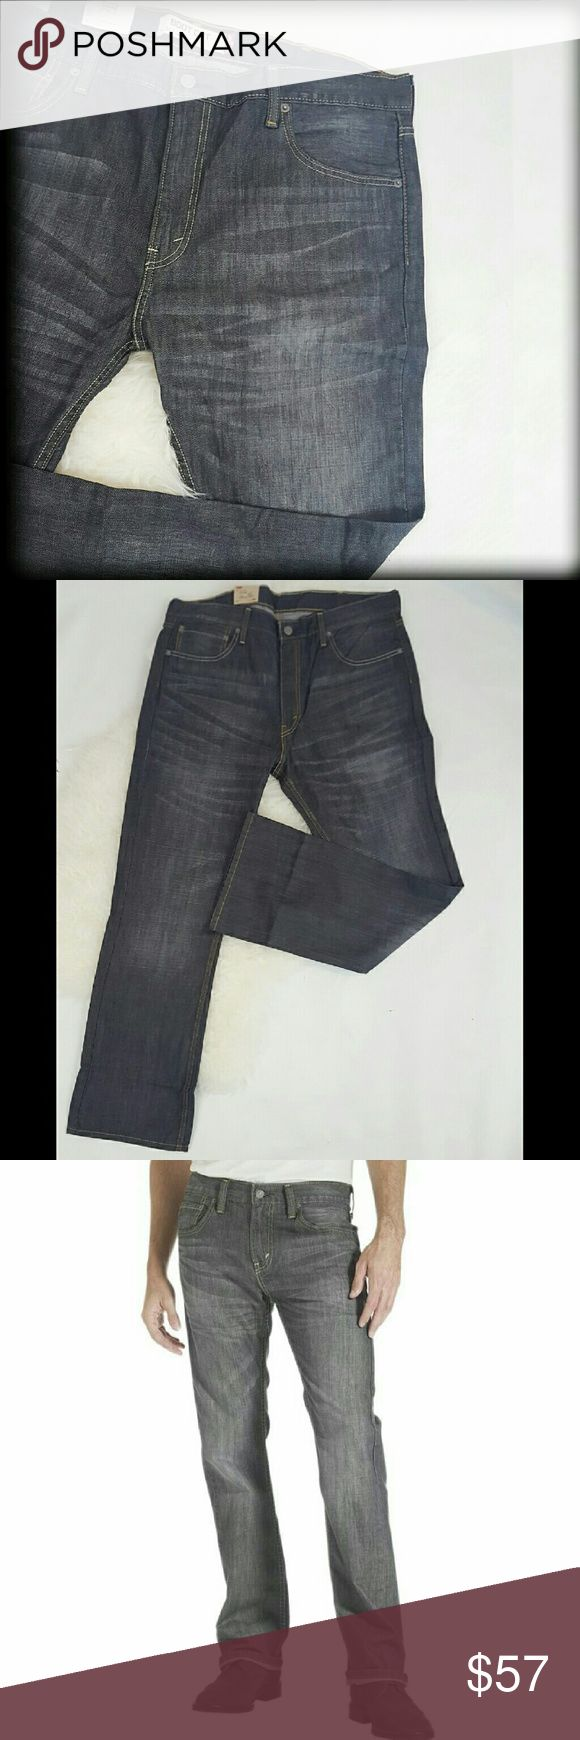 NWT Levis 527 40 x 32 Slim Low Bootcut Jeans LEVI's 527 Jean  Low Bootcut  Sits Below Waist  Slim Bootcut Fit  Size:  40 x 32  Condition: NEW with TAGS  Color: Gray  MSRP:$58.00       5-pocket      Zipper fly      Cotton      Machine wash Levi's Jeans Bootcut